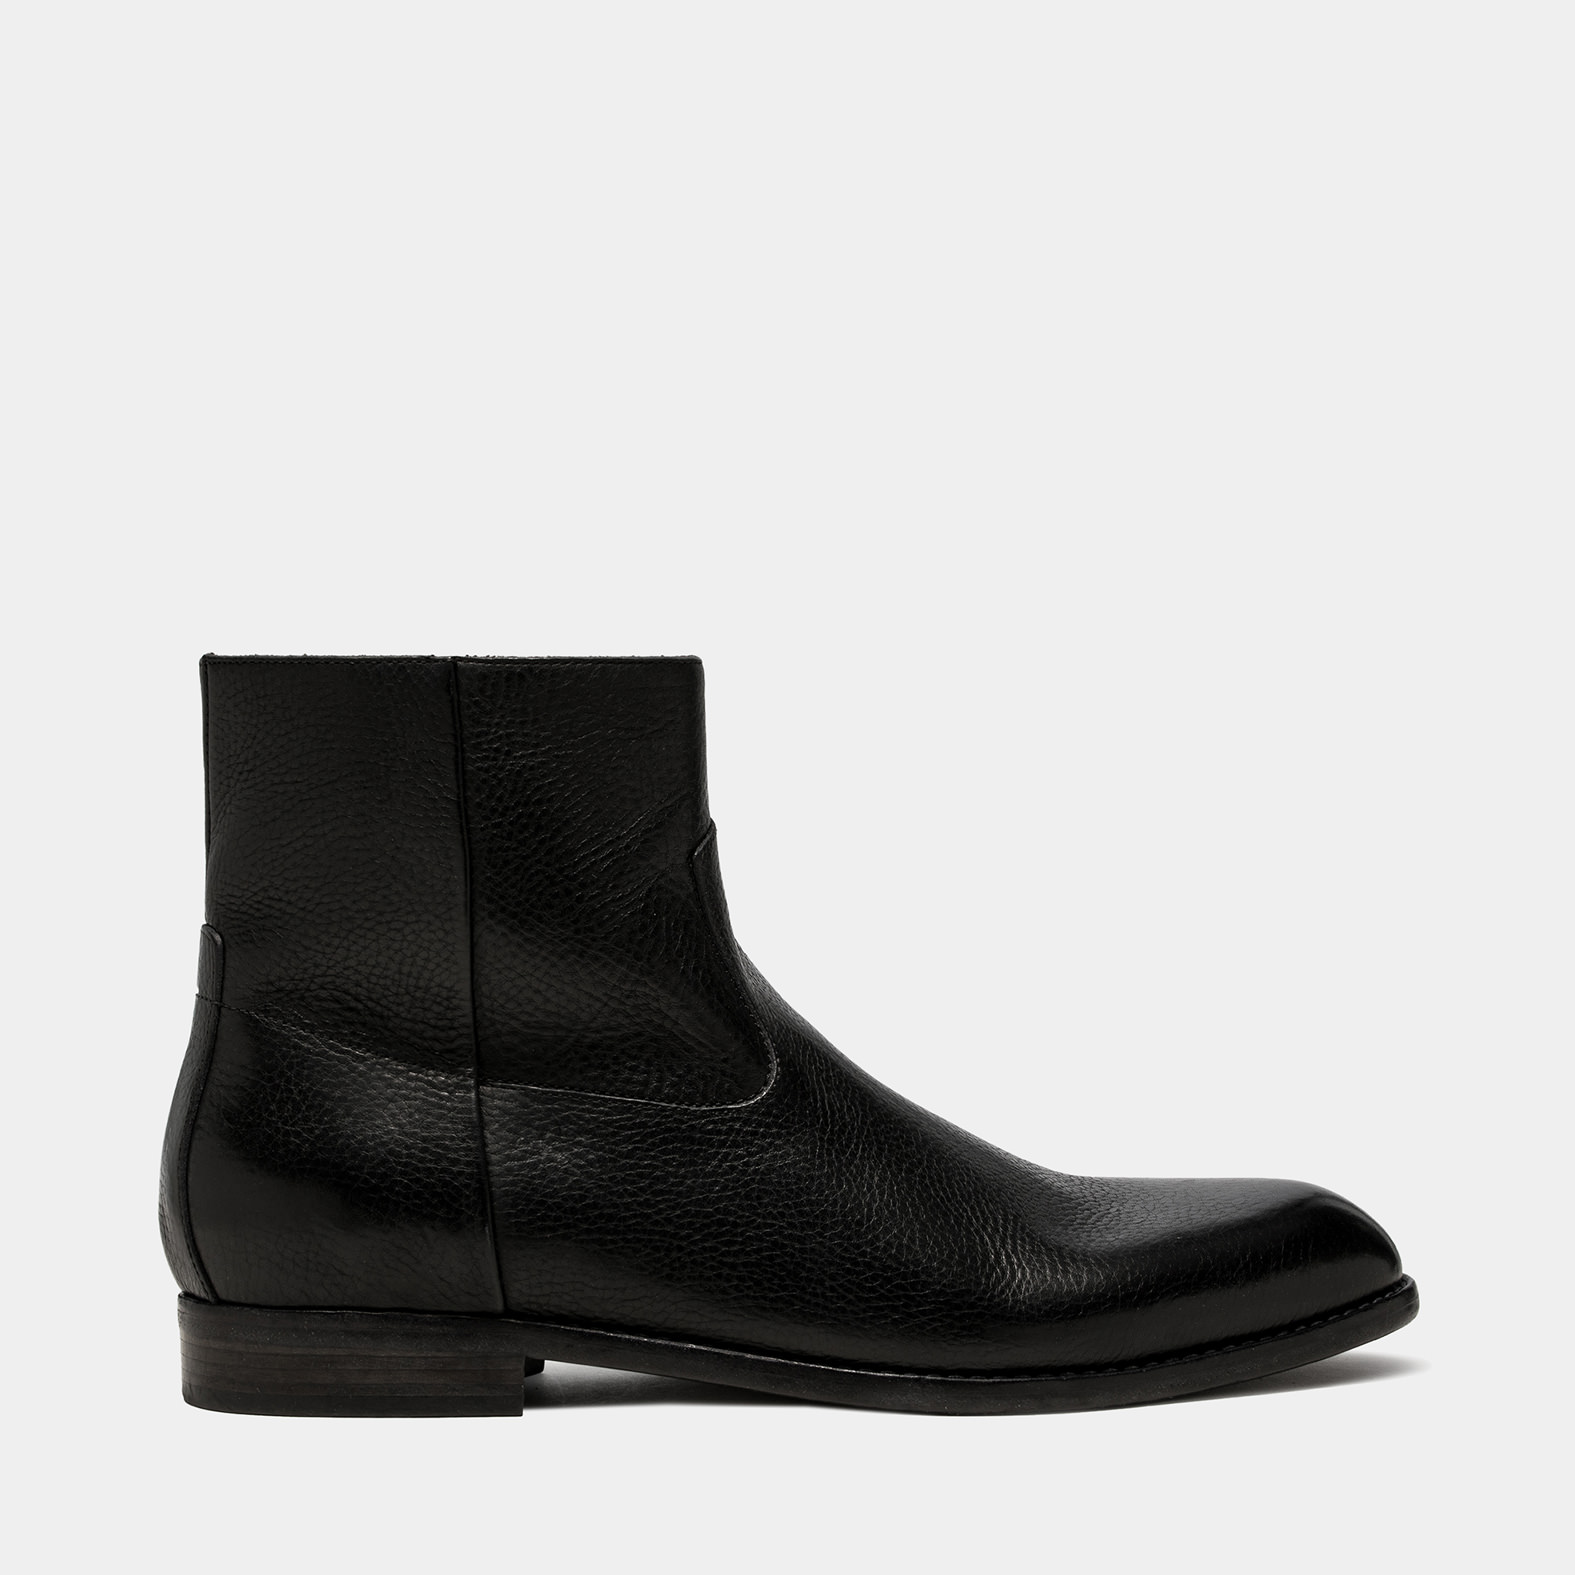 BUTTERO: FLOYD ANKLE BOOTS IN BLACK COWHIDE